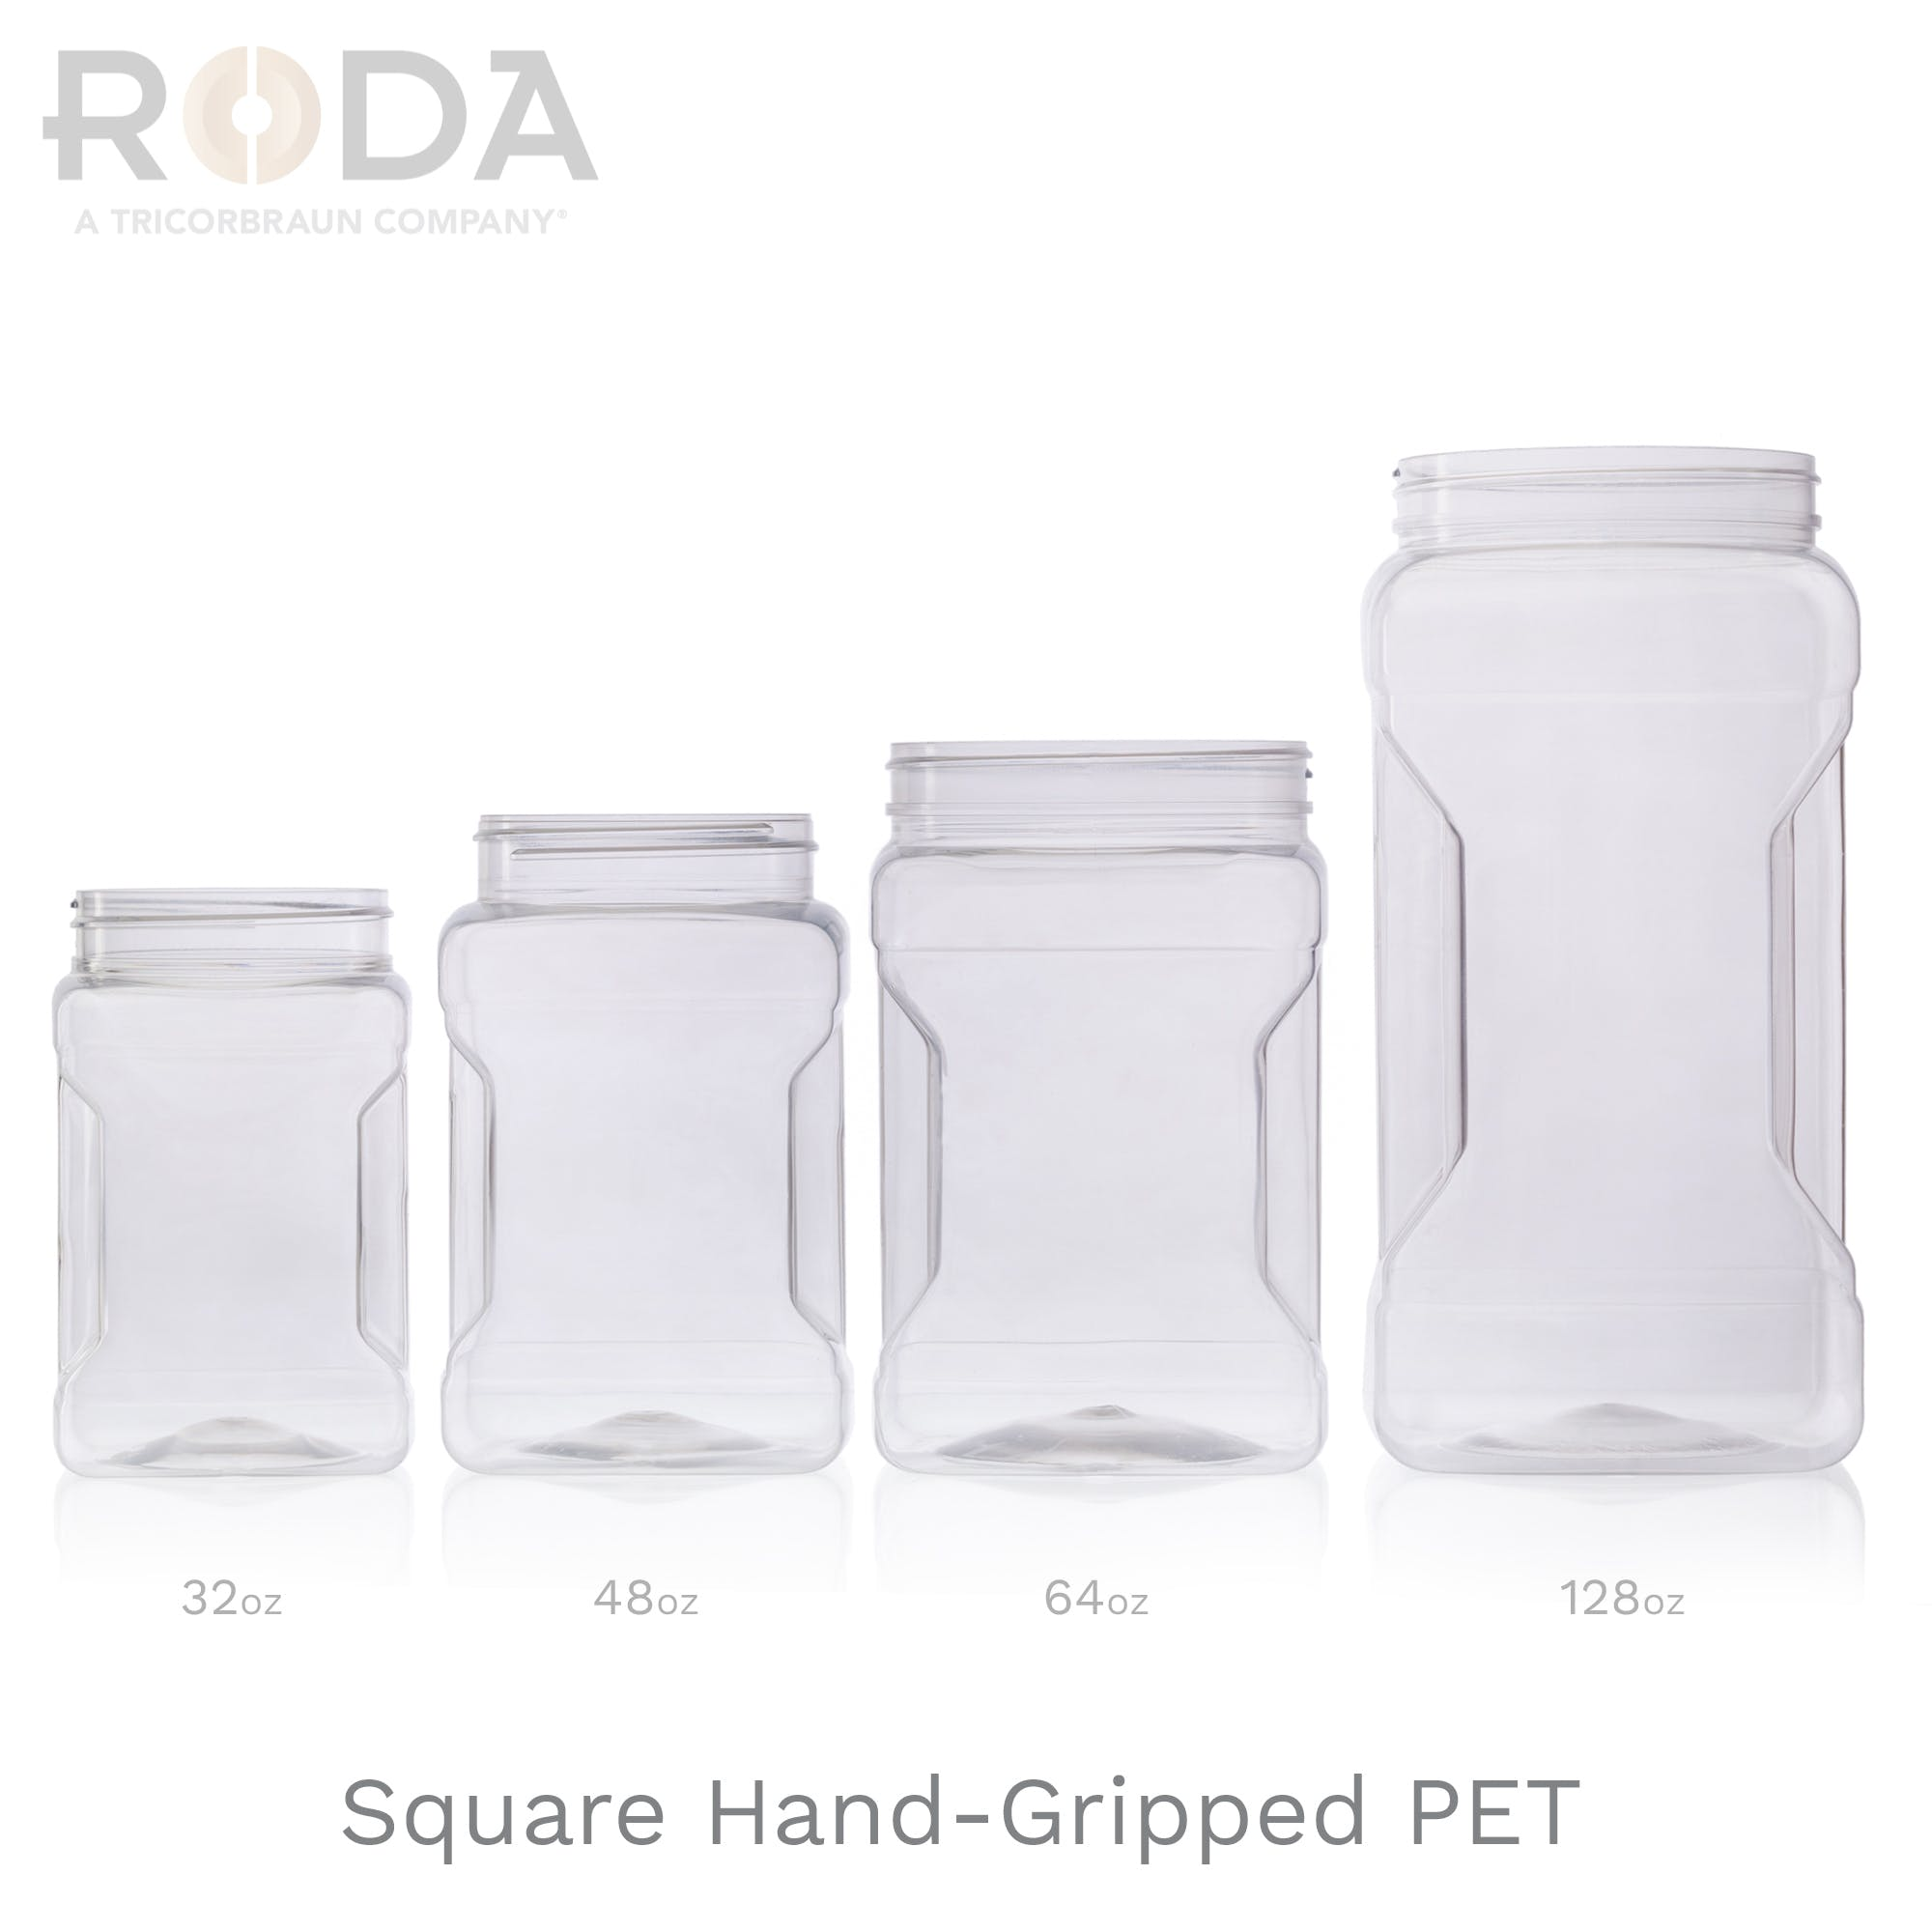 Square Hand-Gripped PET